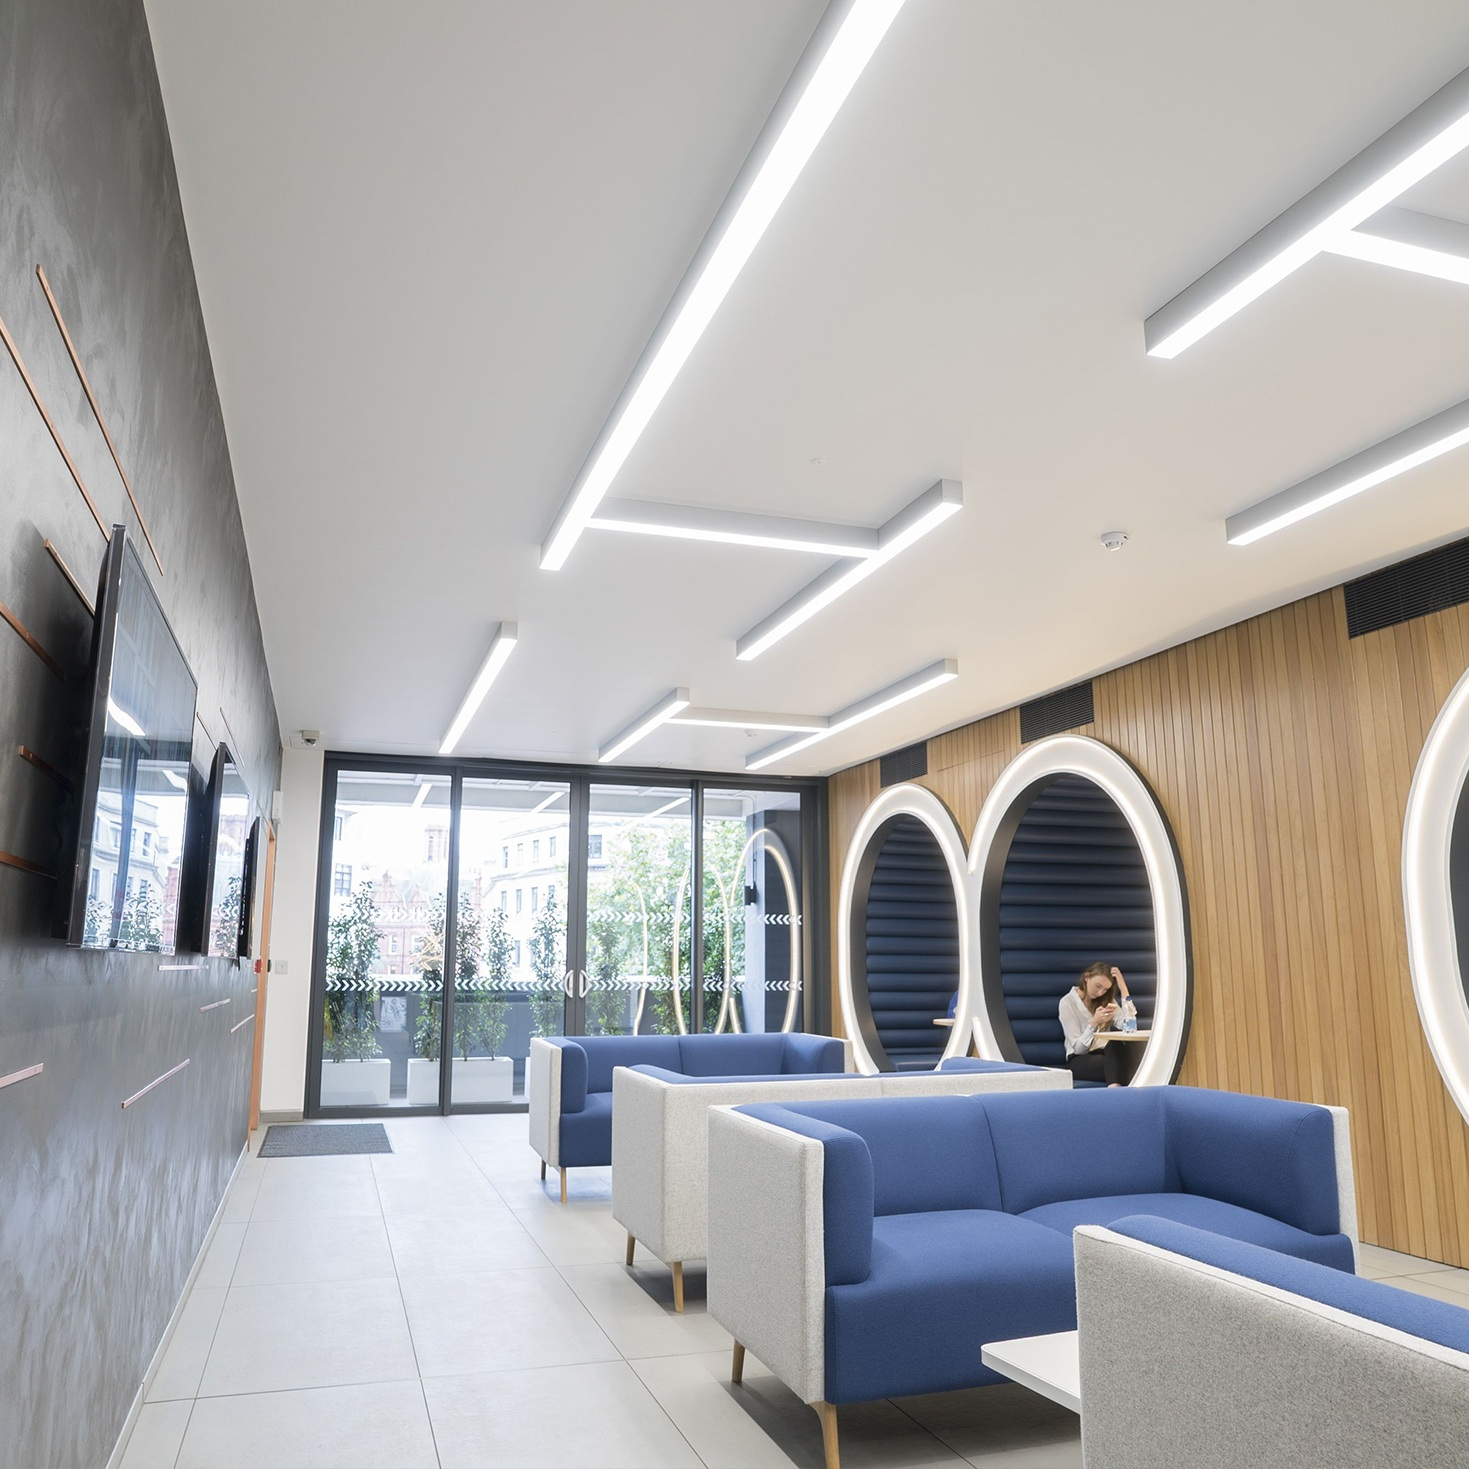 Create systems with custom angles - Lopen surface enables the design hungry environments to have true freedom with its variation of mounting styles, combinations of connections and illuminated corners.